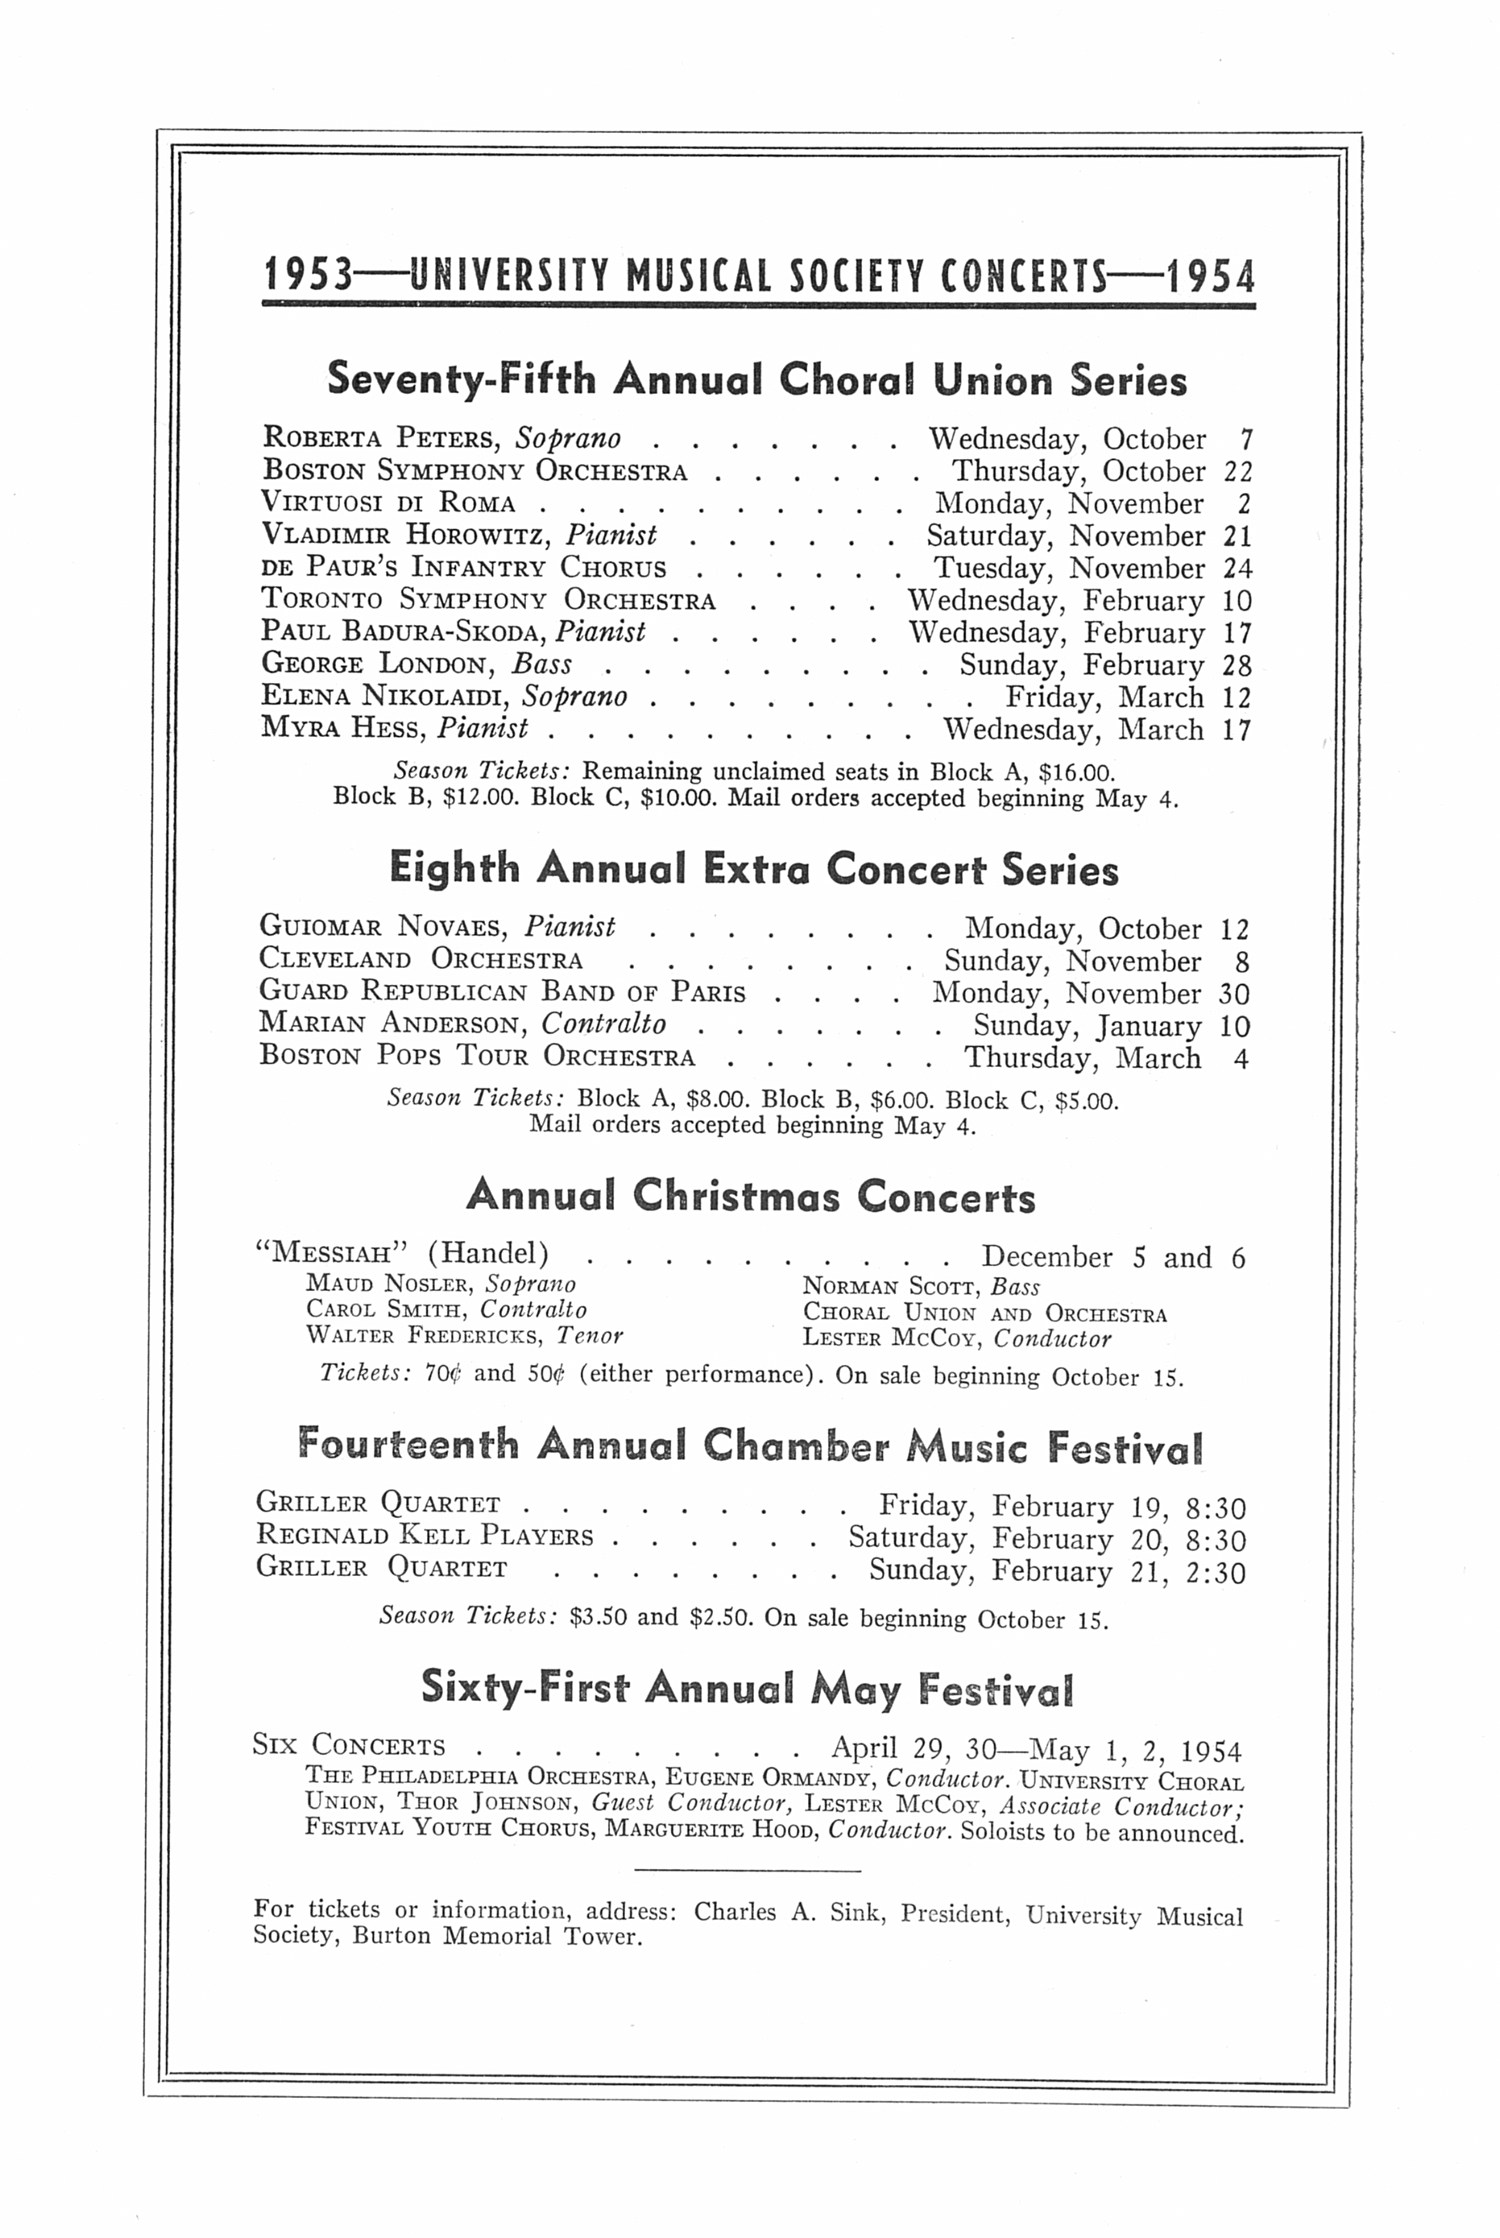 UMS Concert Program, May 19, 1953: Seventy-fourth Annual Choral Union Concert Series -- Boston Symphony Orchestra image